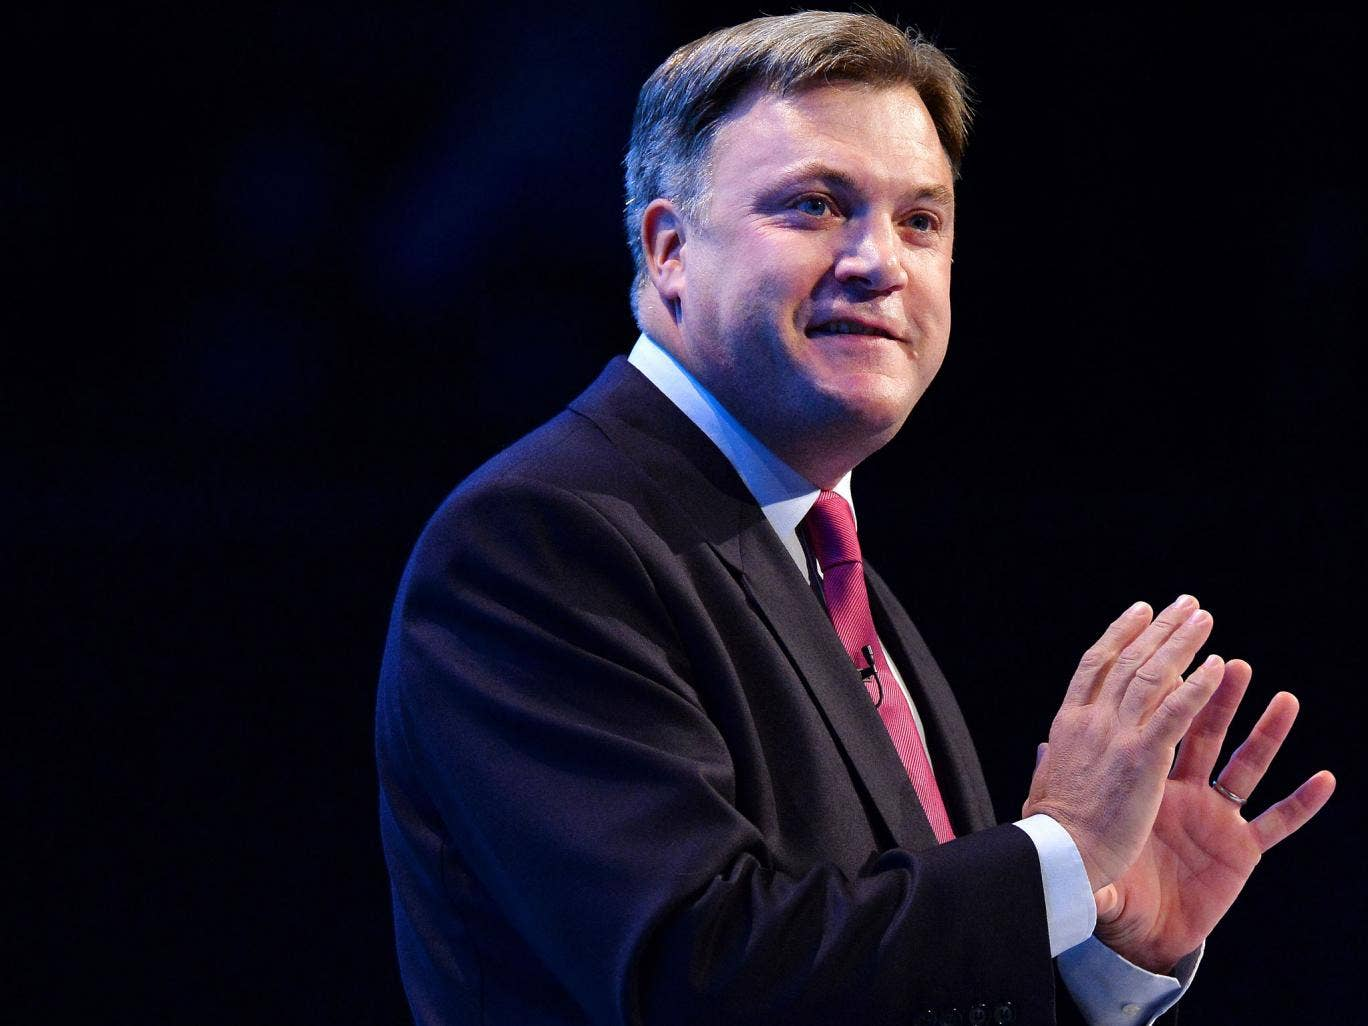 Ed Balls will tell the Fabian society that Labour 'will look at new ways of delivering public services'